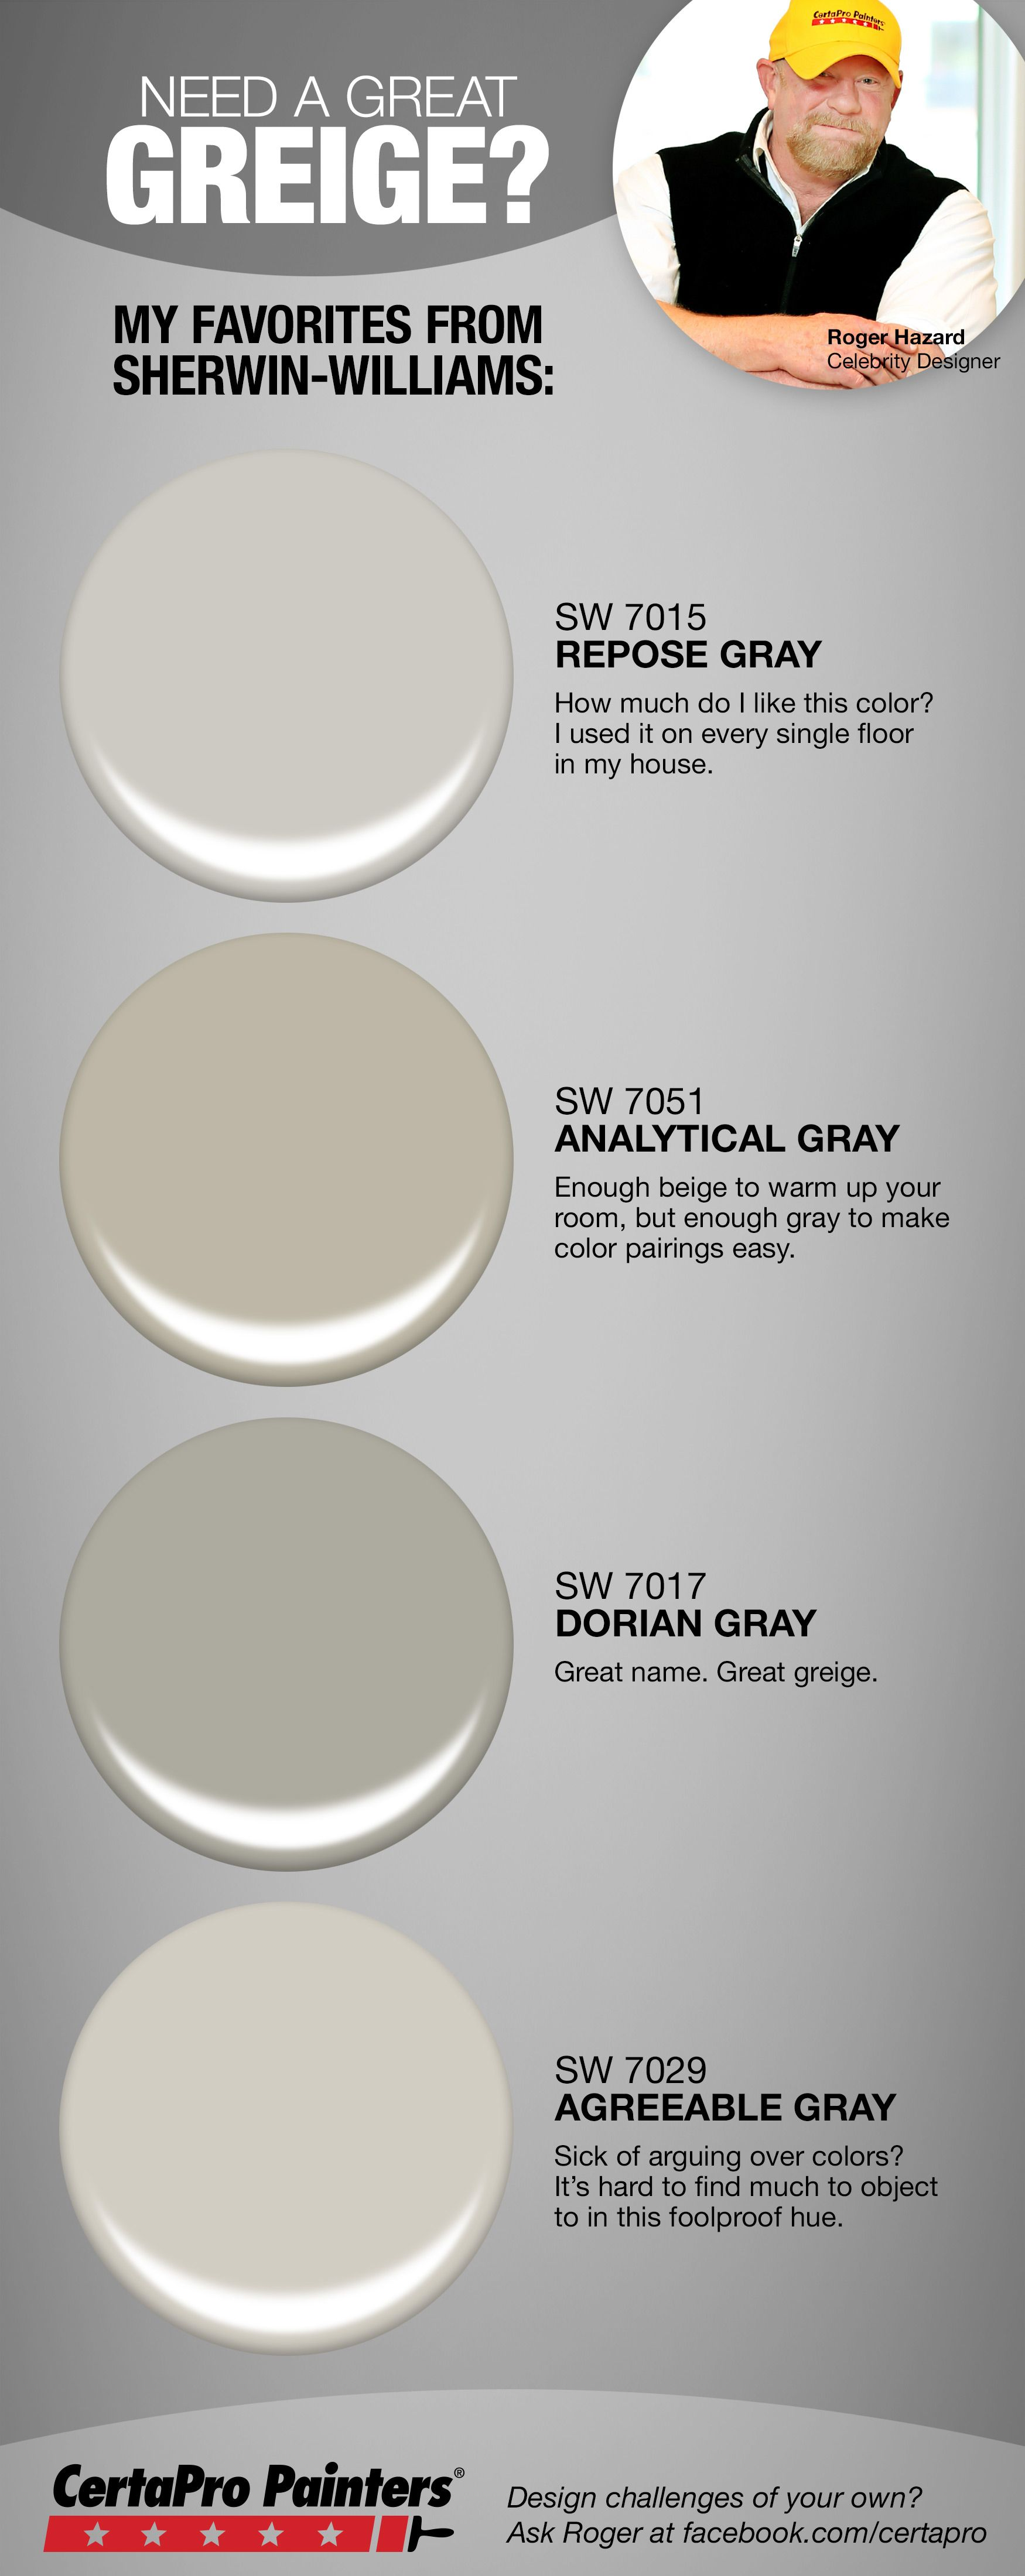 Looking For The Right Greige Paint Your Home Designer Roger Hazard Shares His Most Por Gray Beige Hybrid Colors From Sherwin Williams